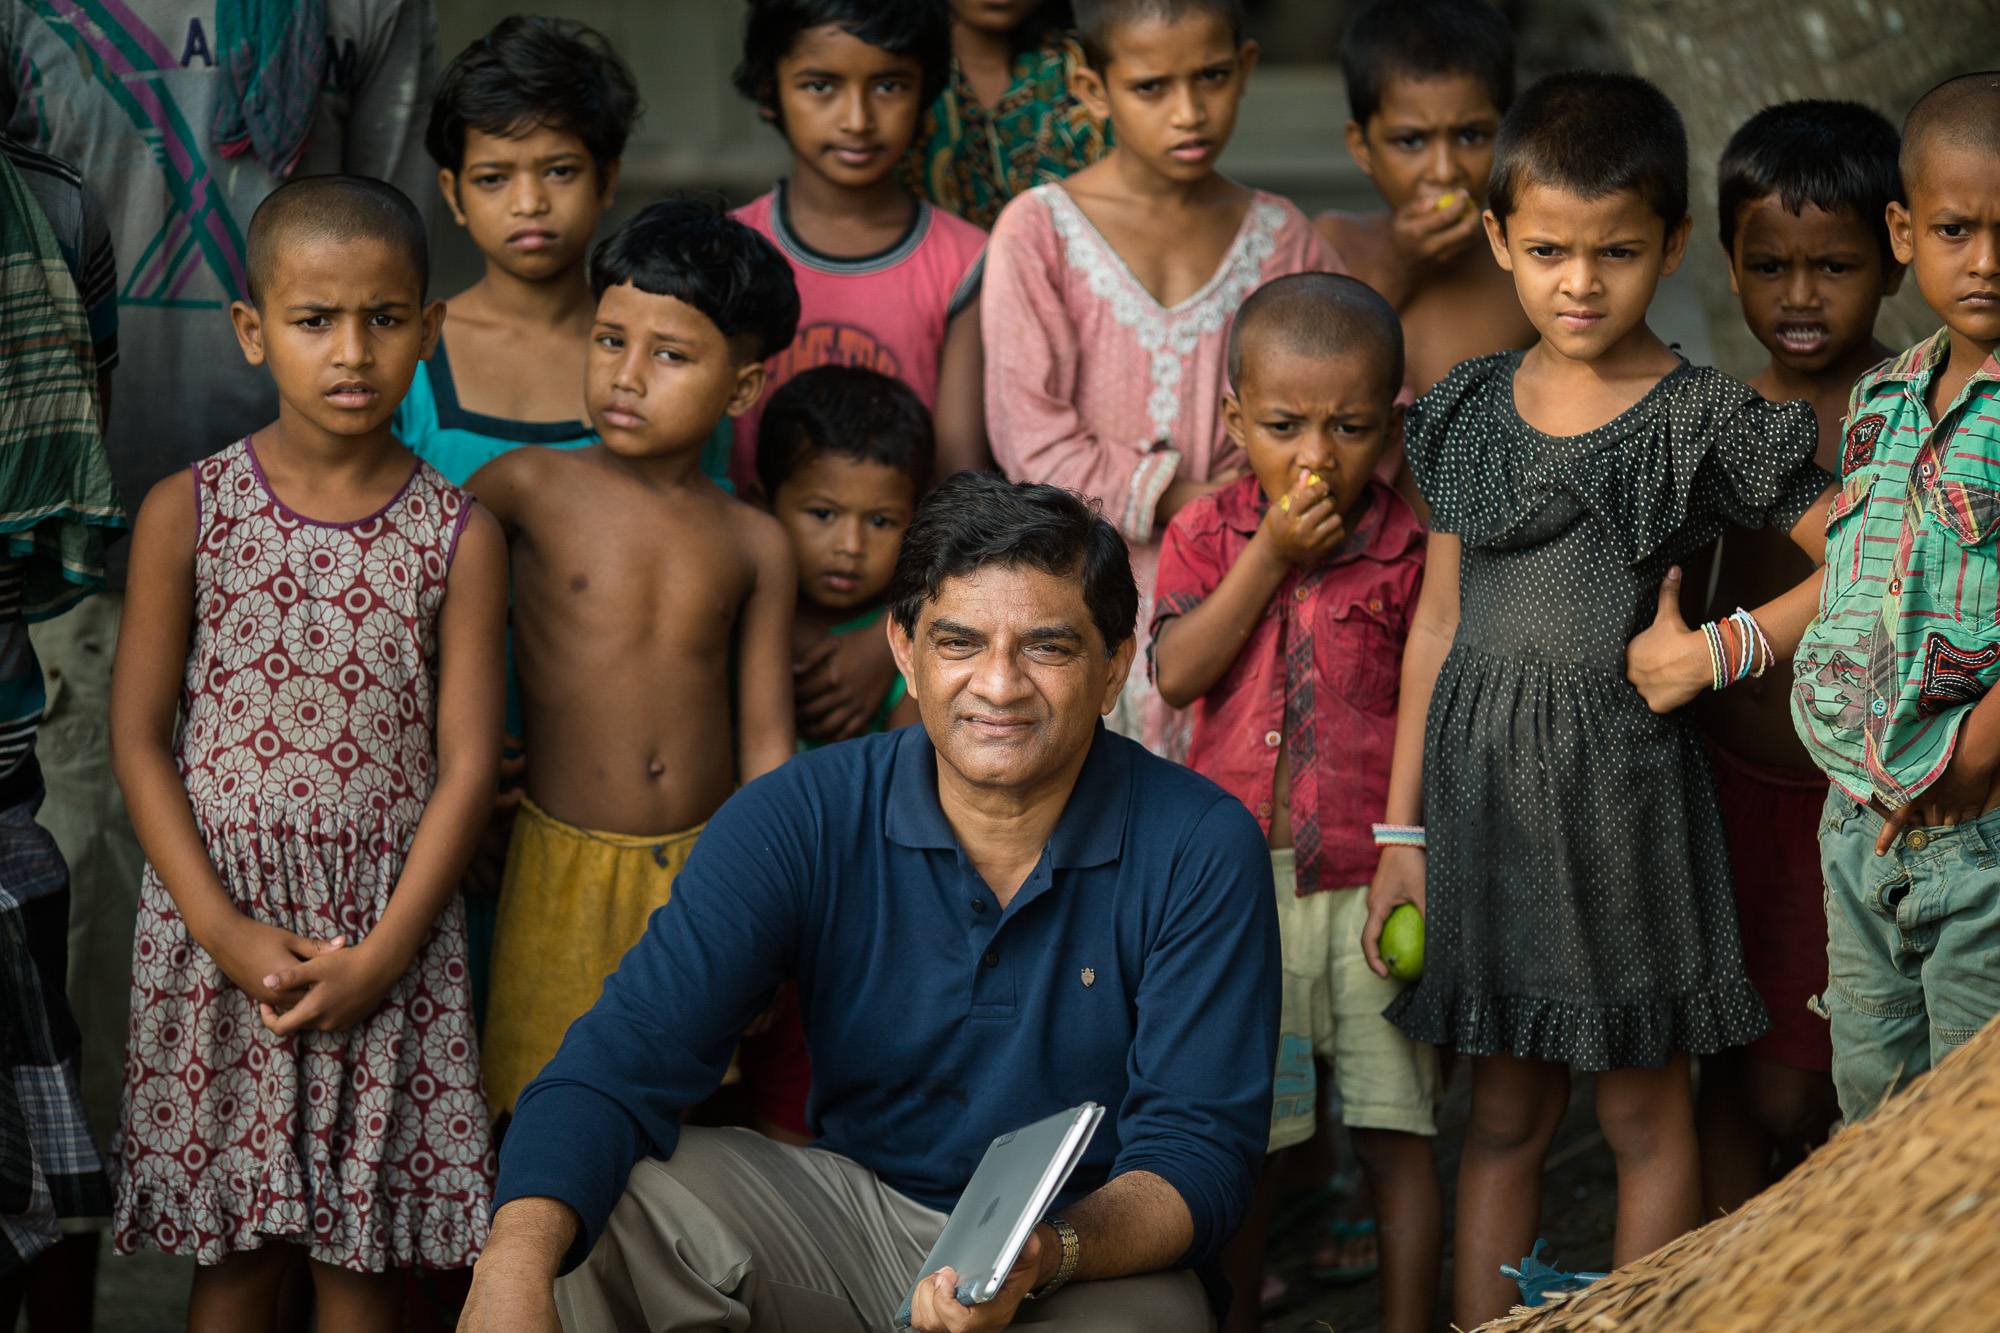 """UTTAR BORO MAGRA, BAKAL, AGAILIHARA, BARISAL, BANGLADESH: May 10, 2016 -  Taroni Kanta Shikari (means """"hunter"""" in Bangla), 45,  is a small farmer owning 3.65 acres of land. He lives with his wife, Baby, his mother, one son (Taposh) who reads in class 7 and one daughter Trishna (means """"thirst"""" in Bangla) who is in paramedic school. He has a brother who works in Dhaka. He completed his study up to grade 7. He could not continue due to the economic condition of his family. Taroni had to take responsibility for the family expenses. He started rice farming at a very young age. He married to Baby. They have  1 son and 1 daughter. At one stage he went to abroad to earn higher income and borrowed 200,000 Taka from his fellow farmers. But, he could not succeed in getting a good job abroad and returned back home to restart his rice farming. They used to live in a kutcha tin shed house.  He used to cultivate only Boro rice in his 3.65 acres of land.  He  did not follow any good rice farming practices such as line sowing, using integrated pest management (IPM) methods, good quality seed and balanced doses of fertilizers etc. He met the Feed the Future Accelerating agriculture Productivity Improvement (AAPI) Activity  staff and the field official of Department of Agricultural Extension (DAE) and got to know about good agricultural practices including use of urea deep placement (UDP) technology. He first received training from USAID AAPI Activity in 2010 and later also attended a motivational field visit. After receiving training he began using UDP technology and other improved practices in rice farming and vegetable crops for last 5 years. On an average he received an incremental production of about 0.4  metric tons (882 pounds) of Boro rice every year. His income increased every year due to improved productivity of rice crop and also other vegetable crops as he applied improved rice  farm management practices.  He used the additional income to repay what was left of his"""